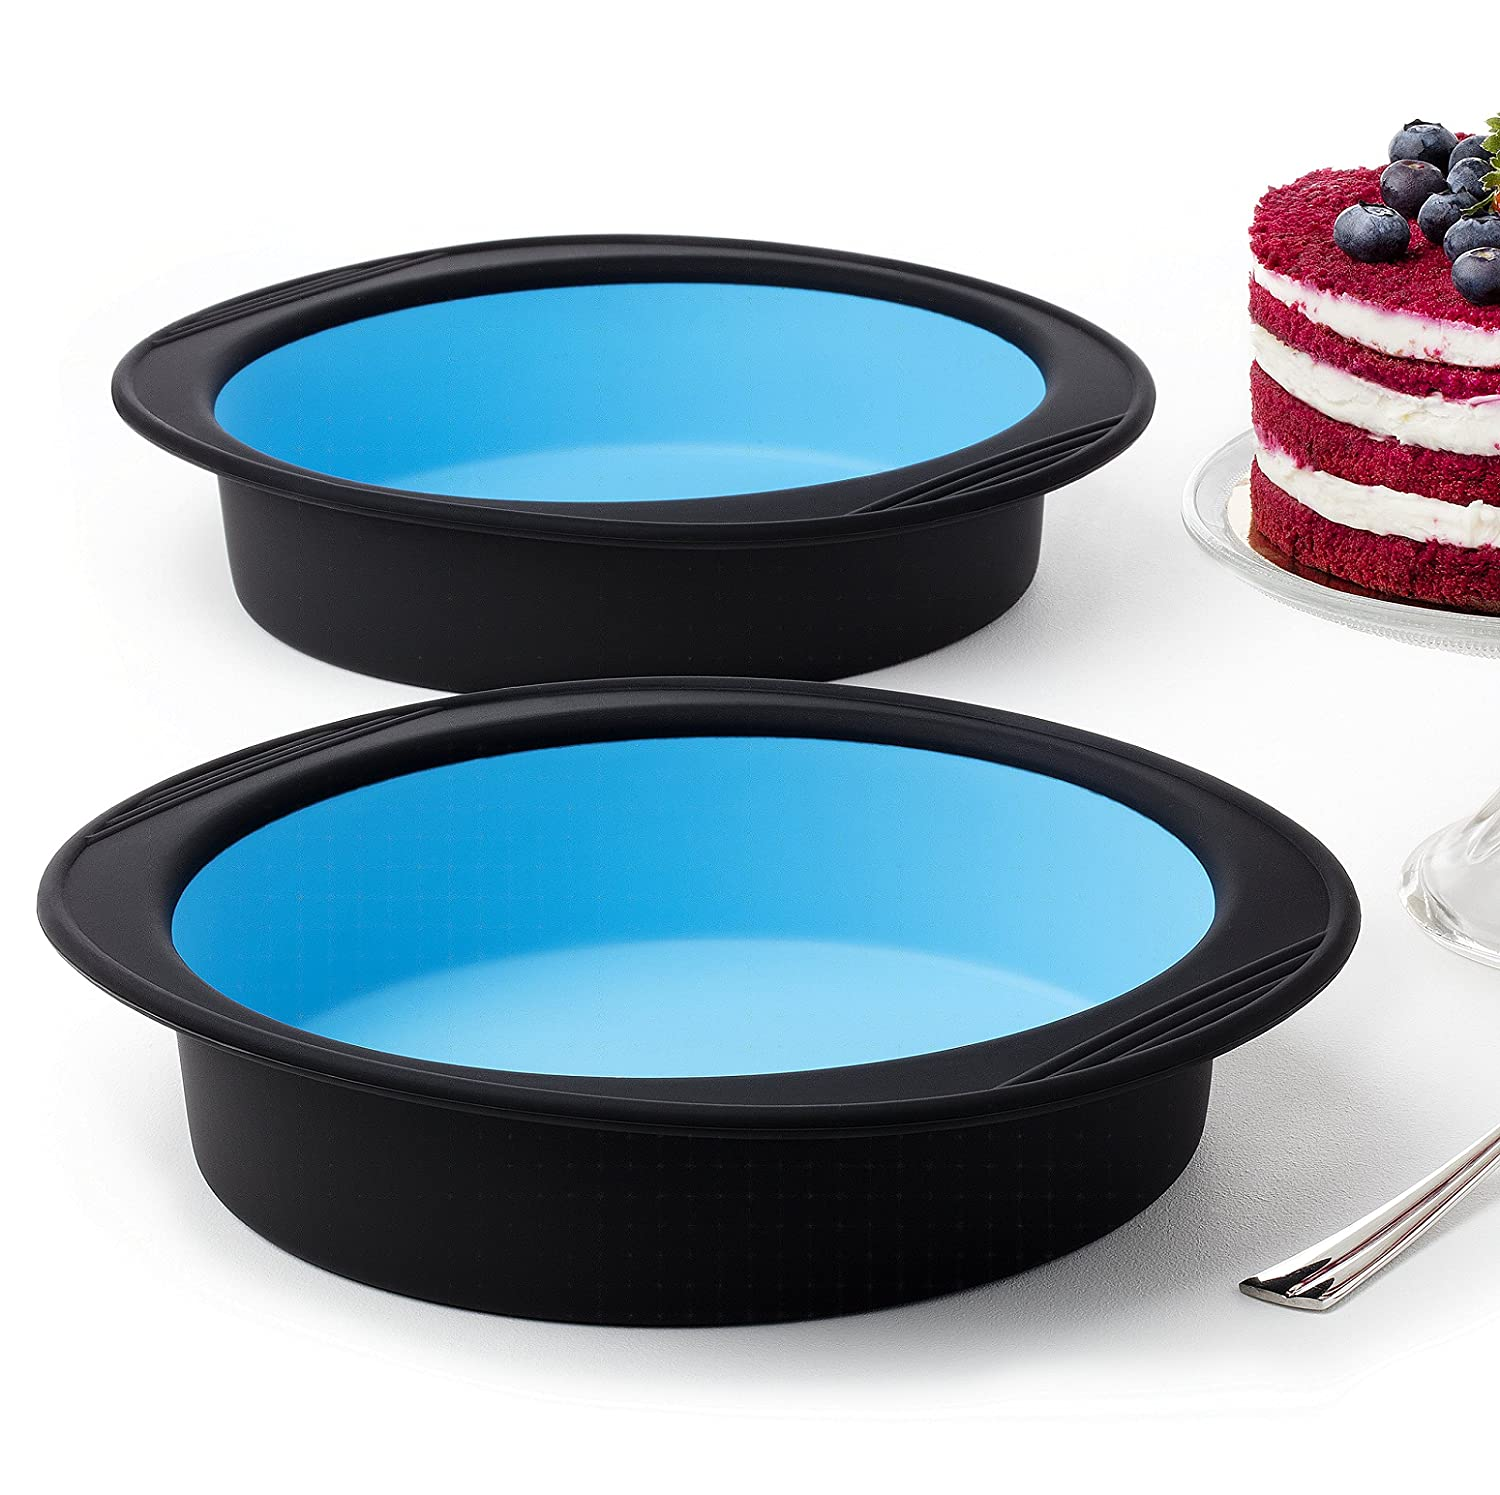 Pack of 2 Big Round Cake Pie Tart Black and Blue Silicone Mold Pans - Thick Silicone